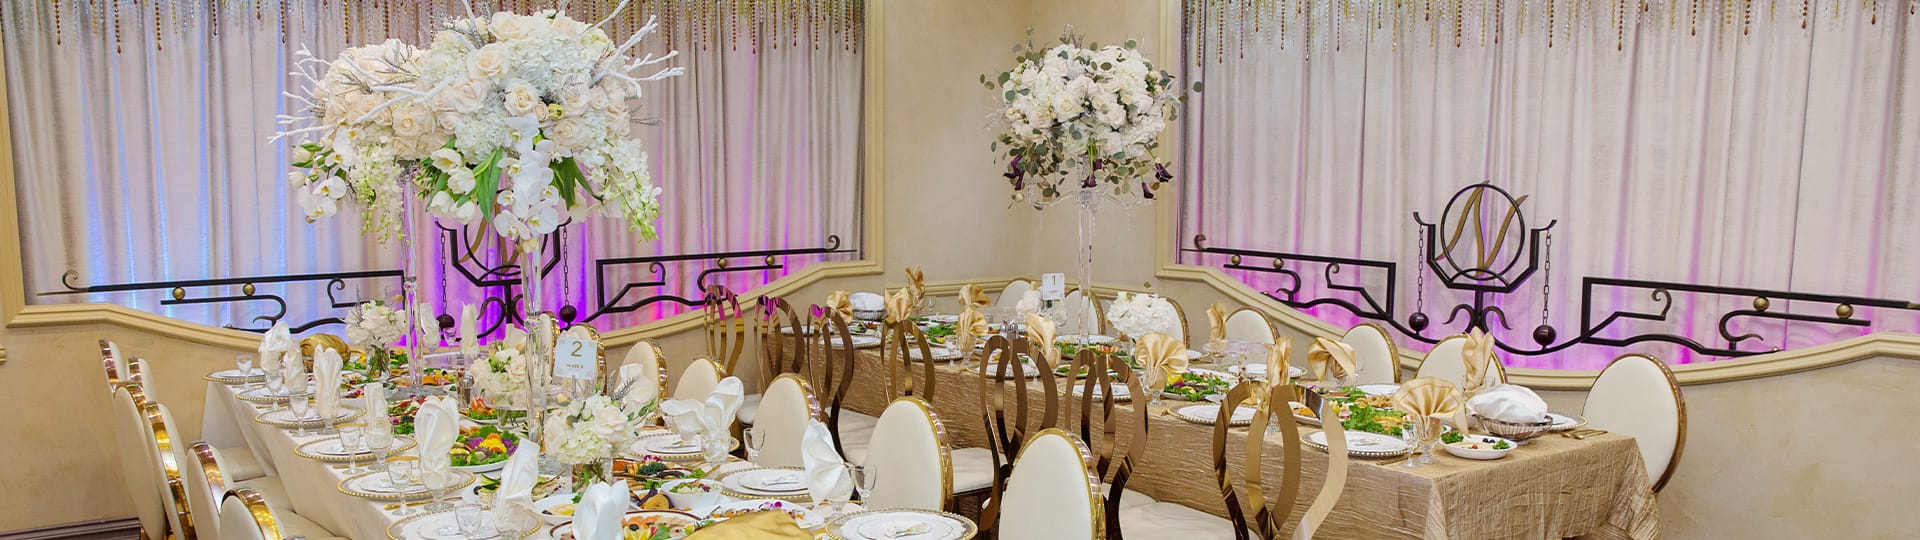 Nairi Banquet Hall Venue